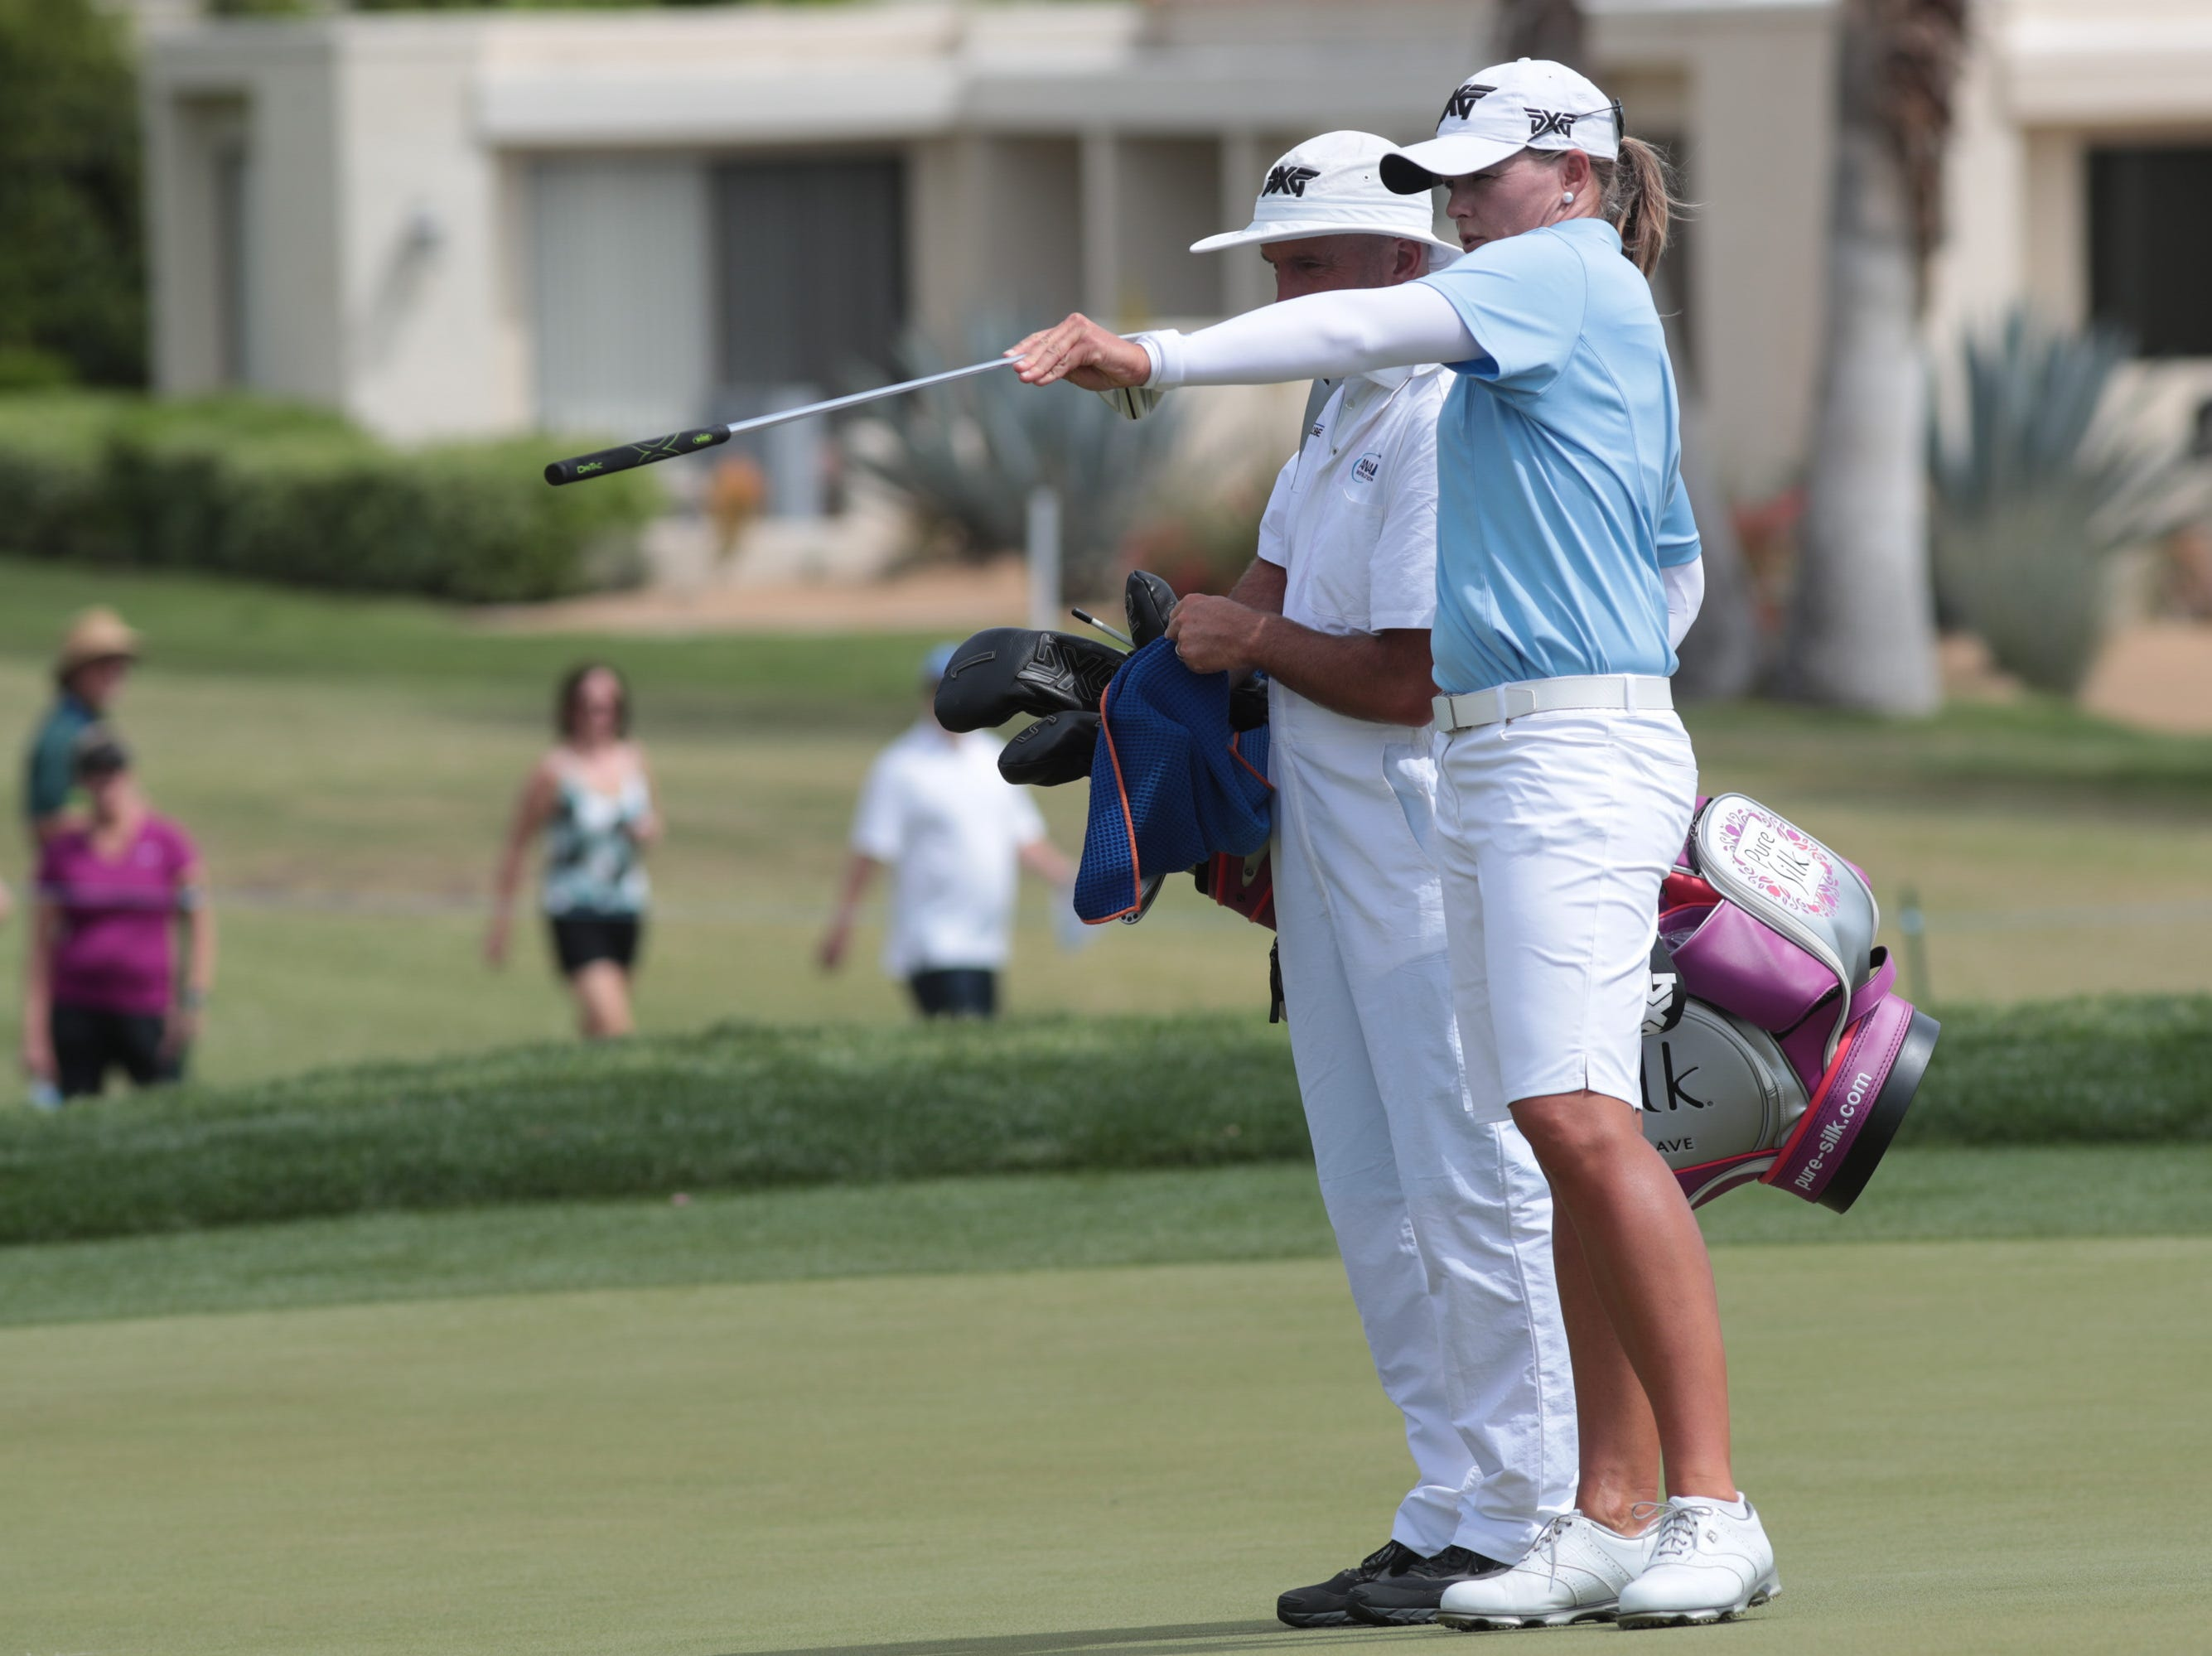 Katherine Kirk prepares for a putt with her caddie on the first hole of the Dinah Shore Course at the ANA Inspiration, Rancho Mirage, Calif., April 6, 2019.